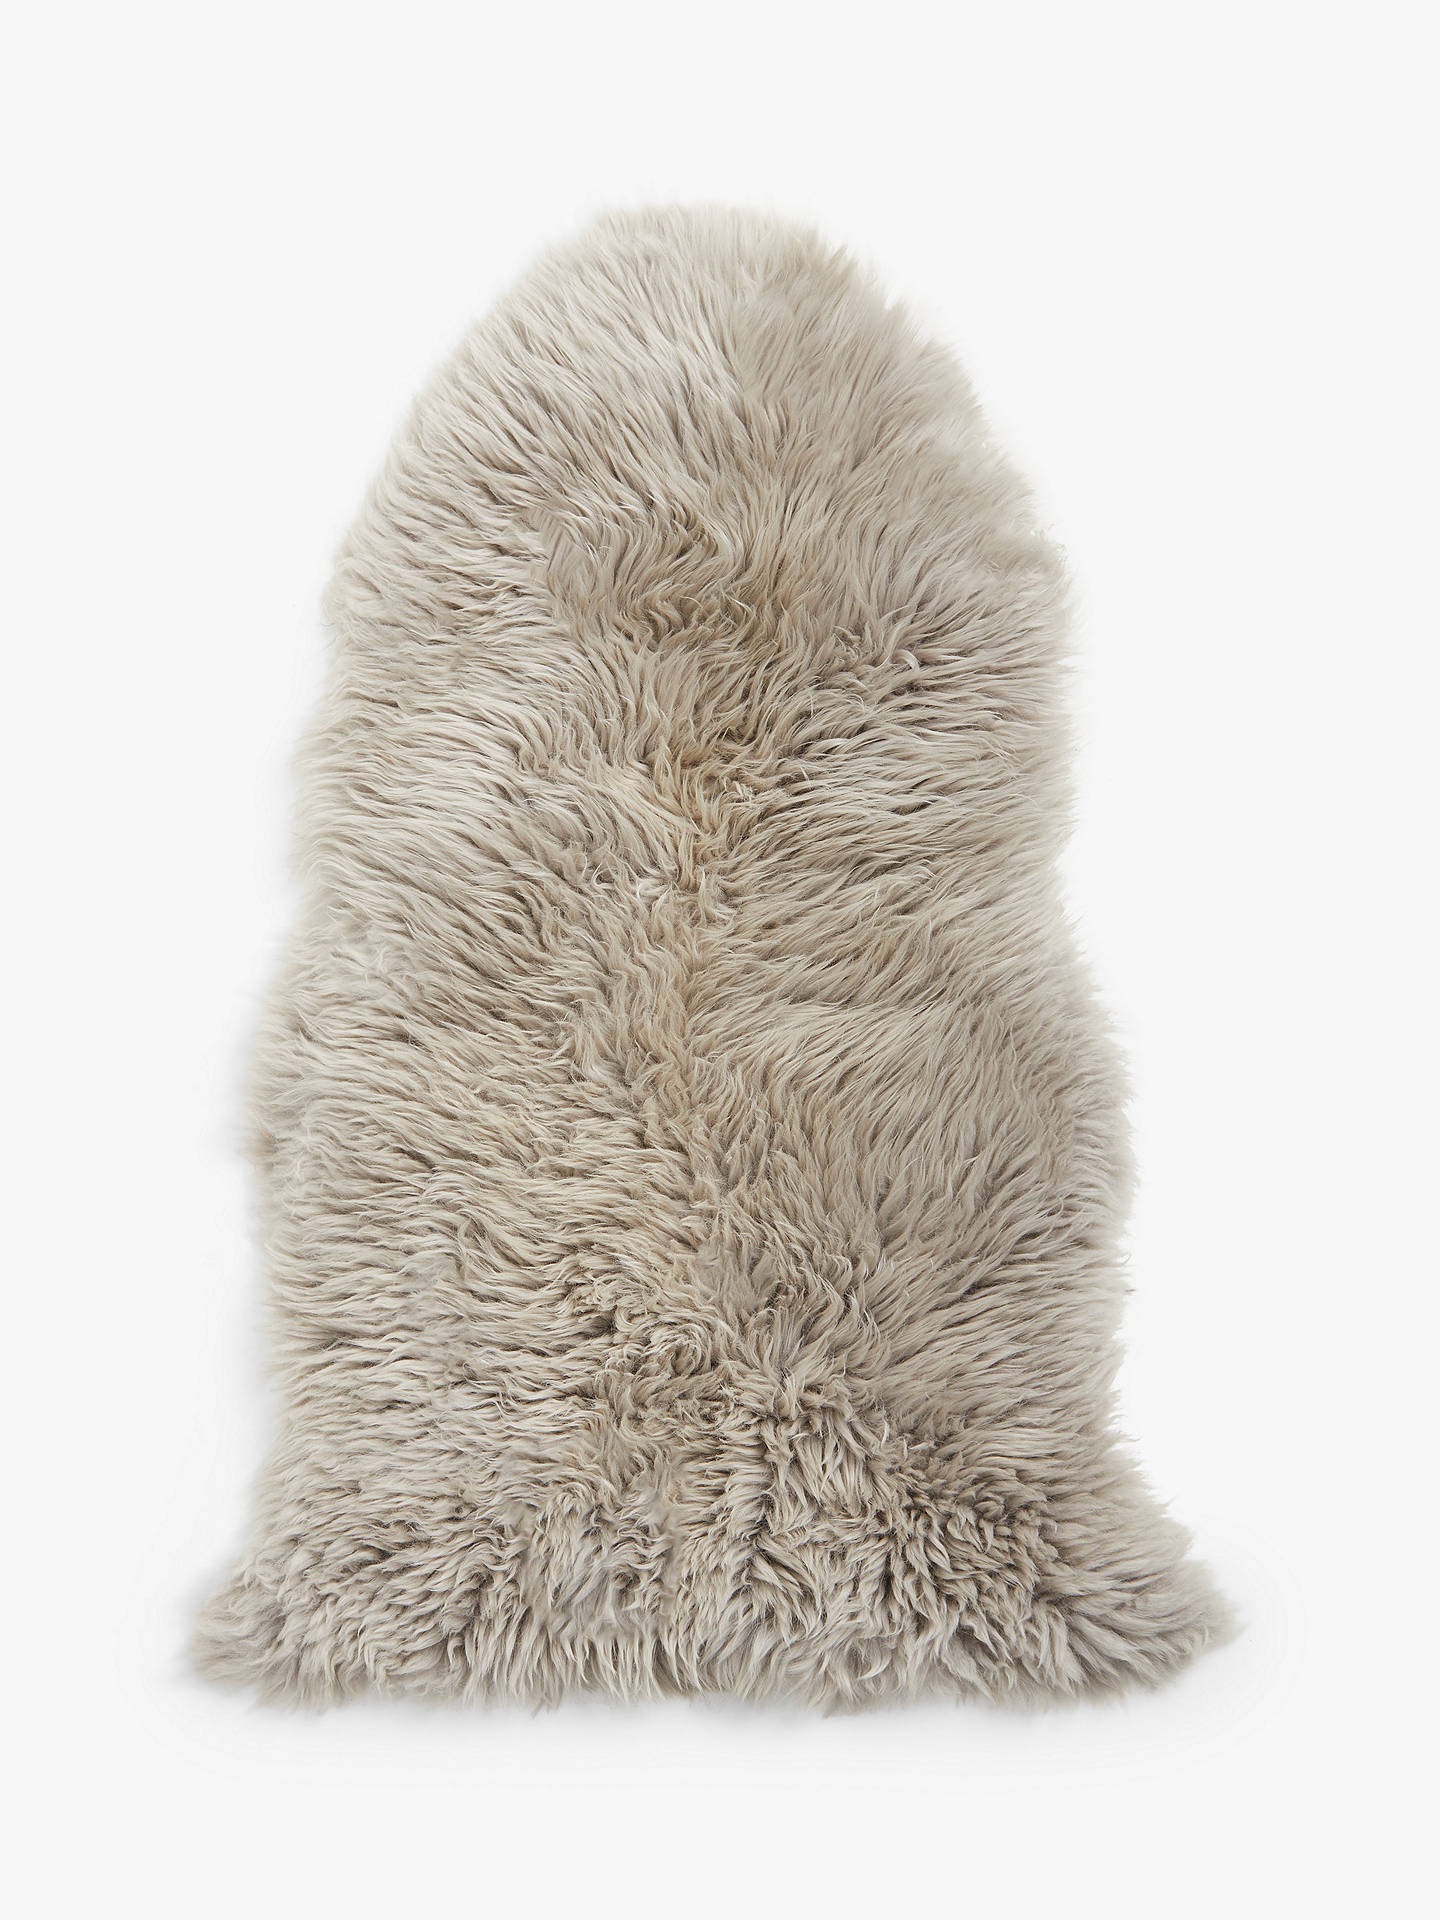 Buy John Lewis & Partners Single Sheepskin Rug, Grey Online at johnlewis.com